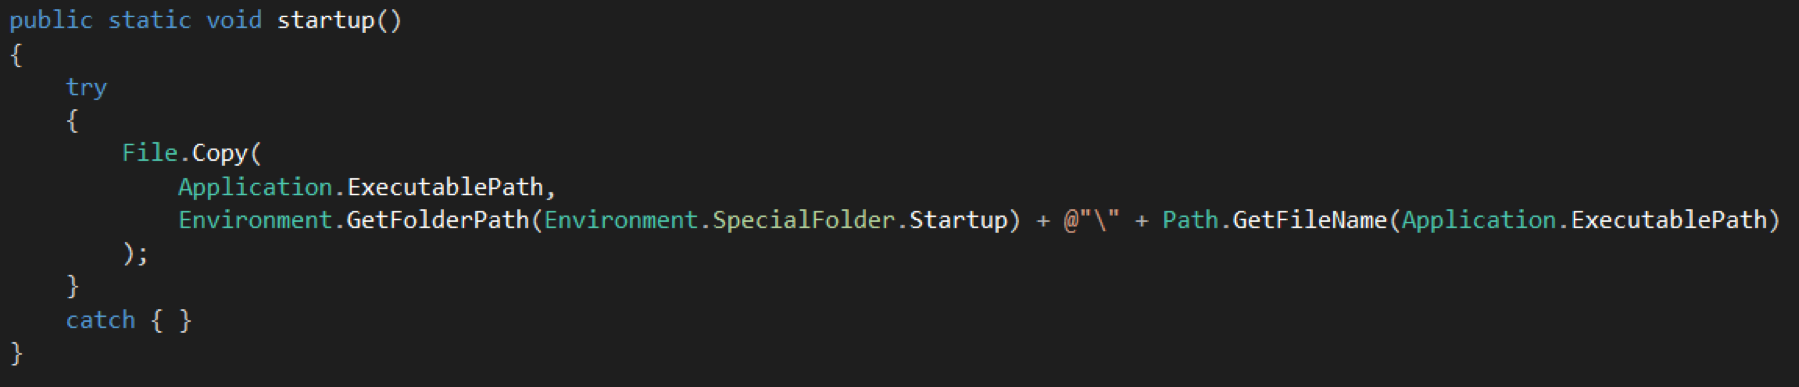 there should be a lot of test cases here but to cut the testing short, since some basic string and variable manipulation don't work, we can try to do some code substitution